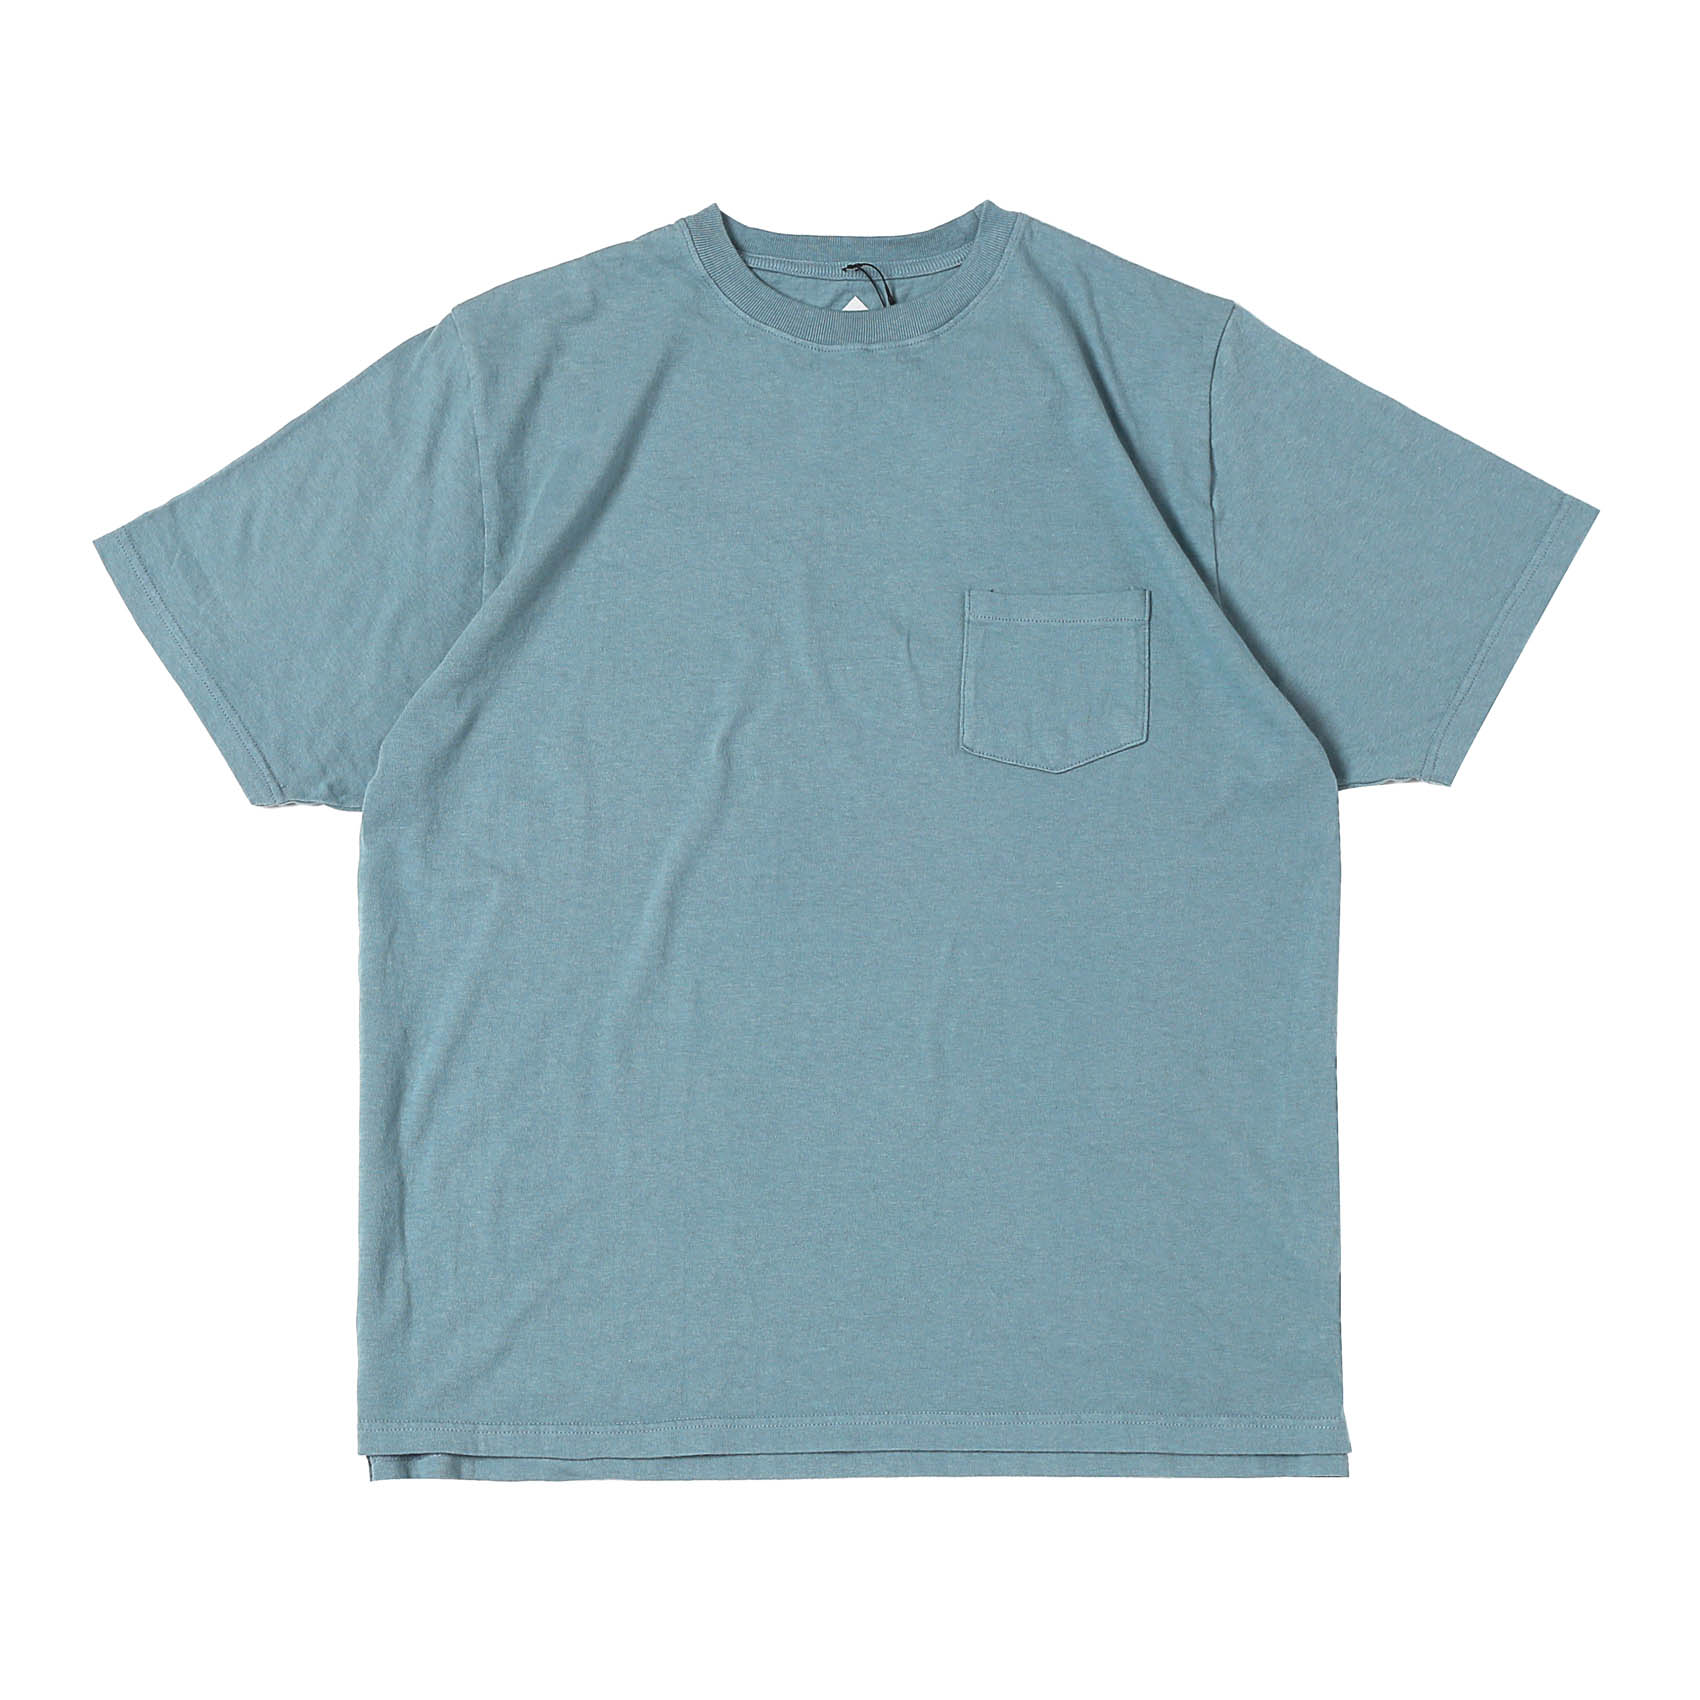 BASIC POCKET TEE - ICE BLUE